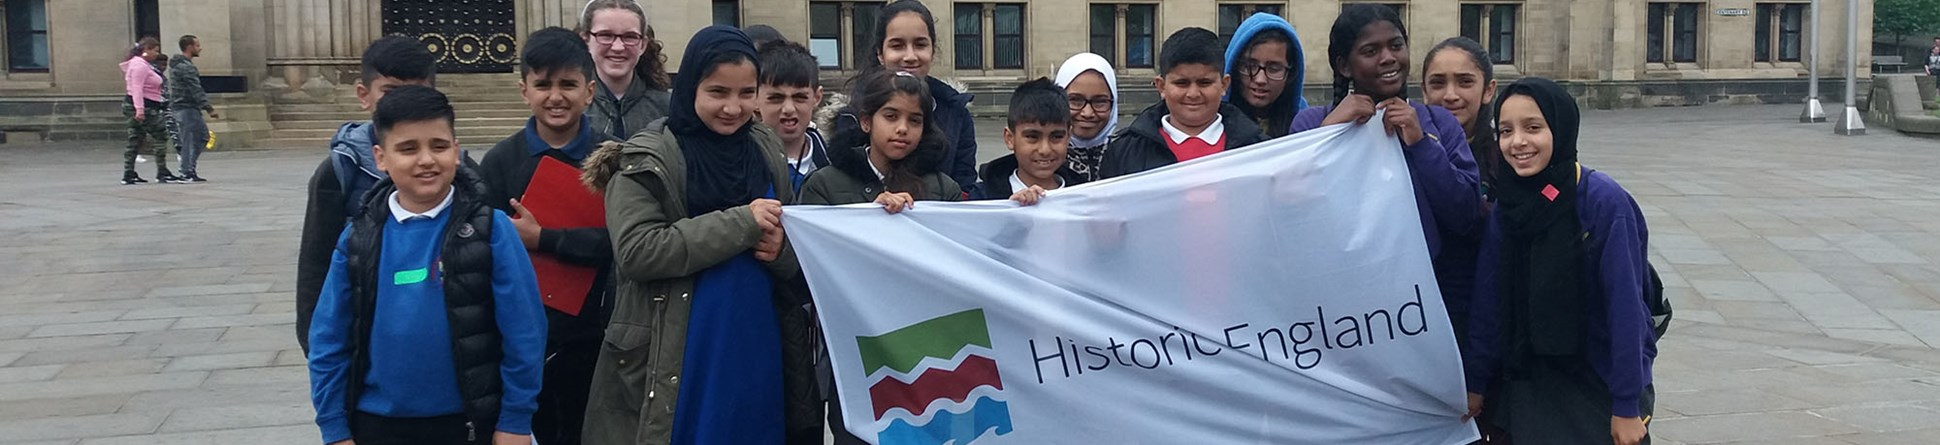 Pupils outside Bradford City Hall holding a banner with the Historic England logo on it.